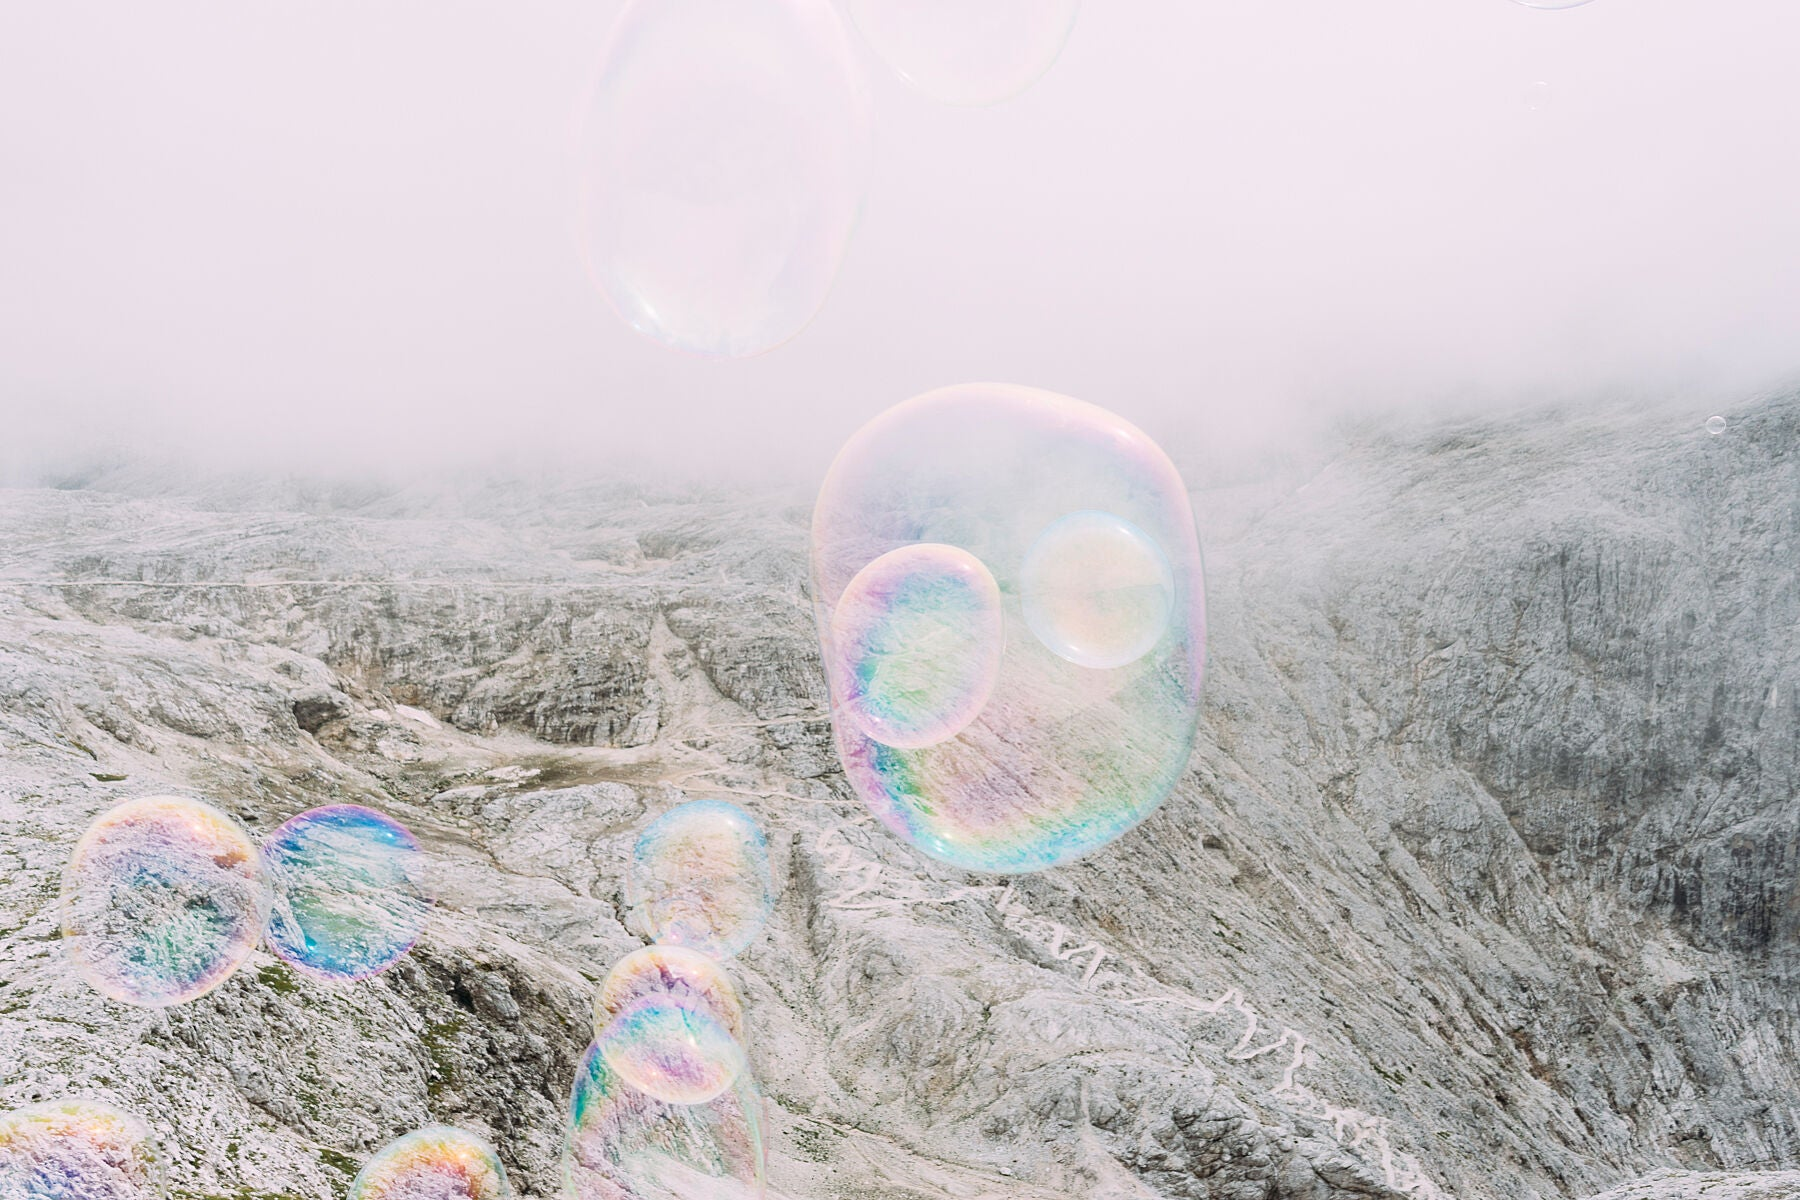 Soapbubble Studies- Pale di San Martino II